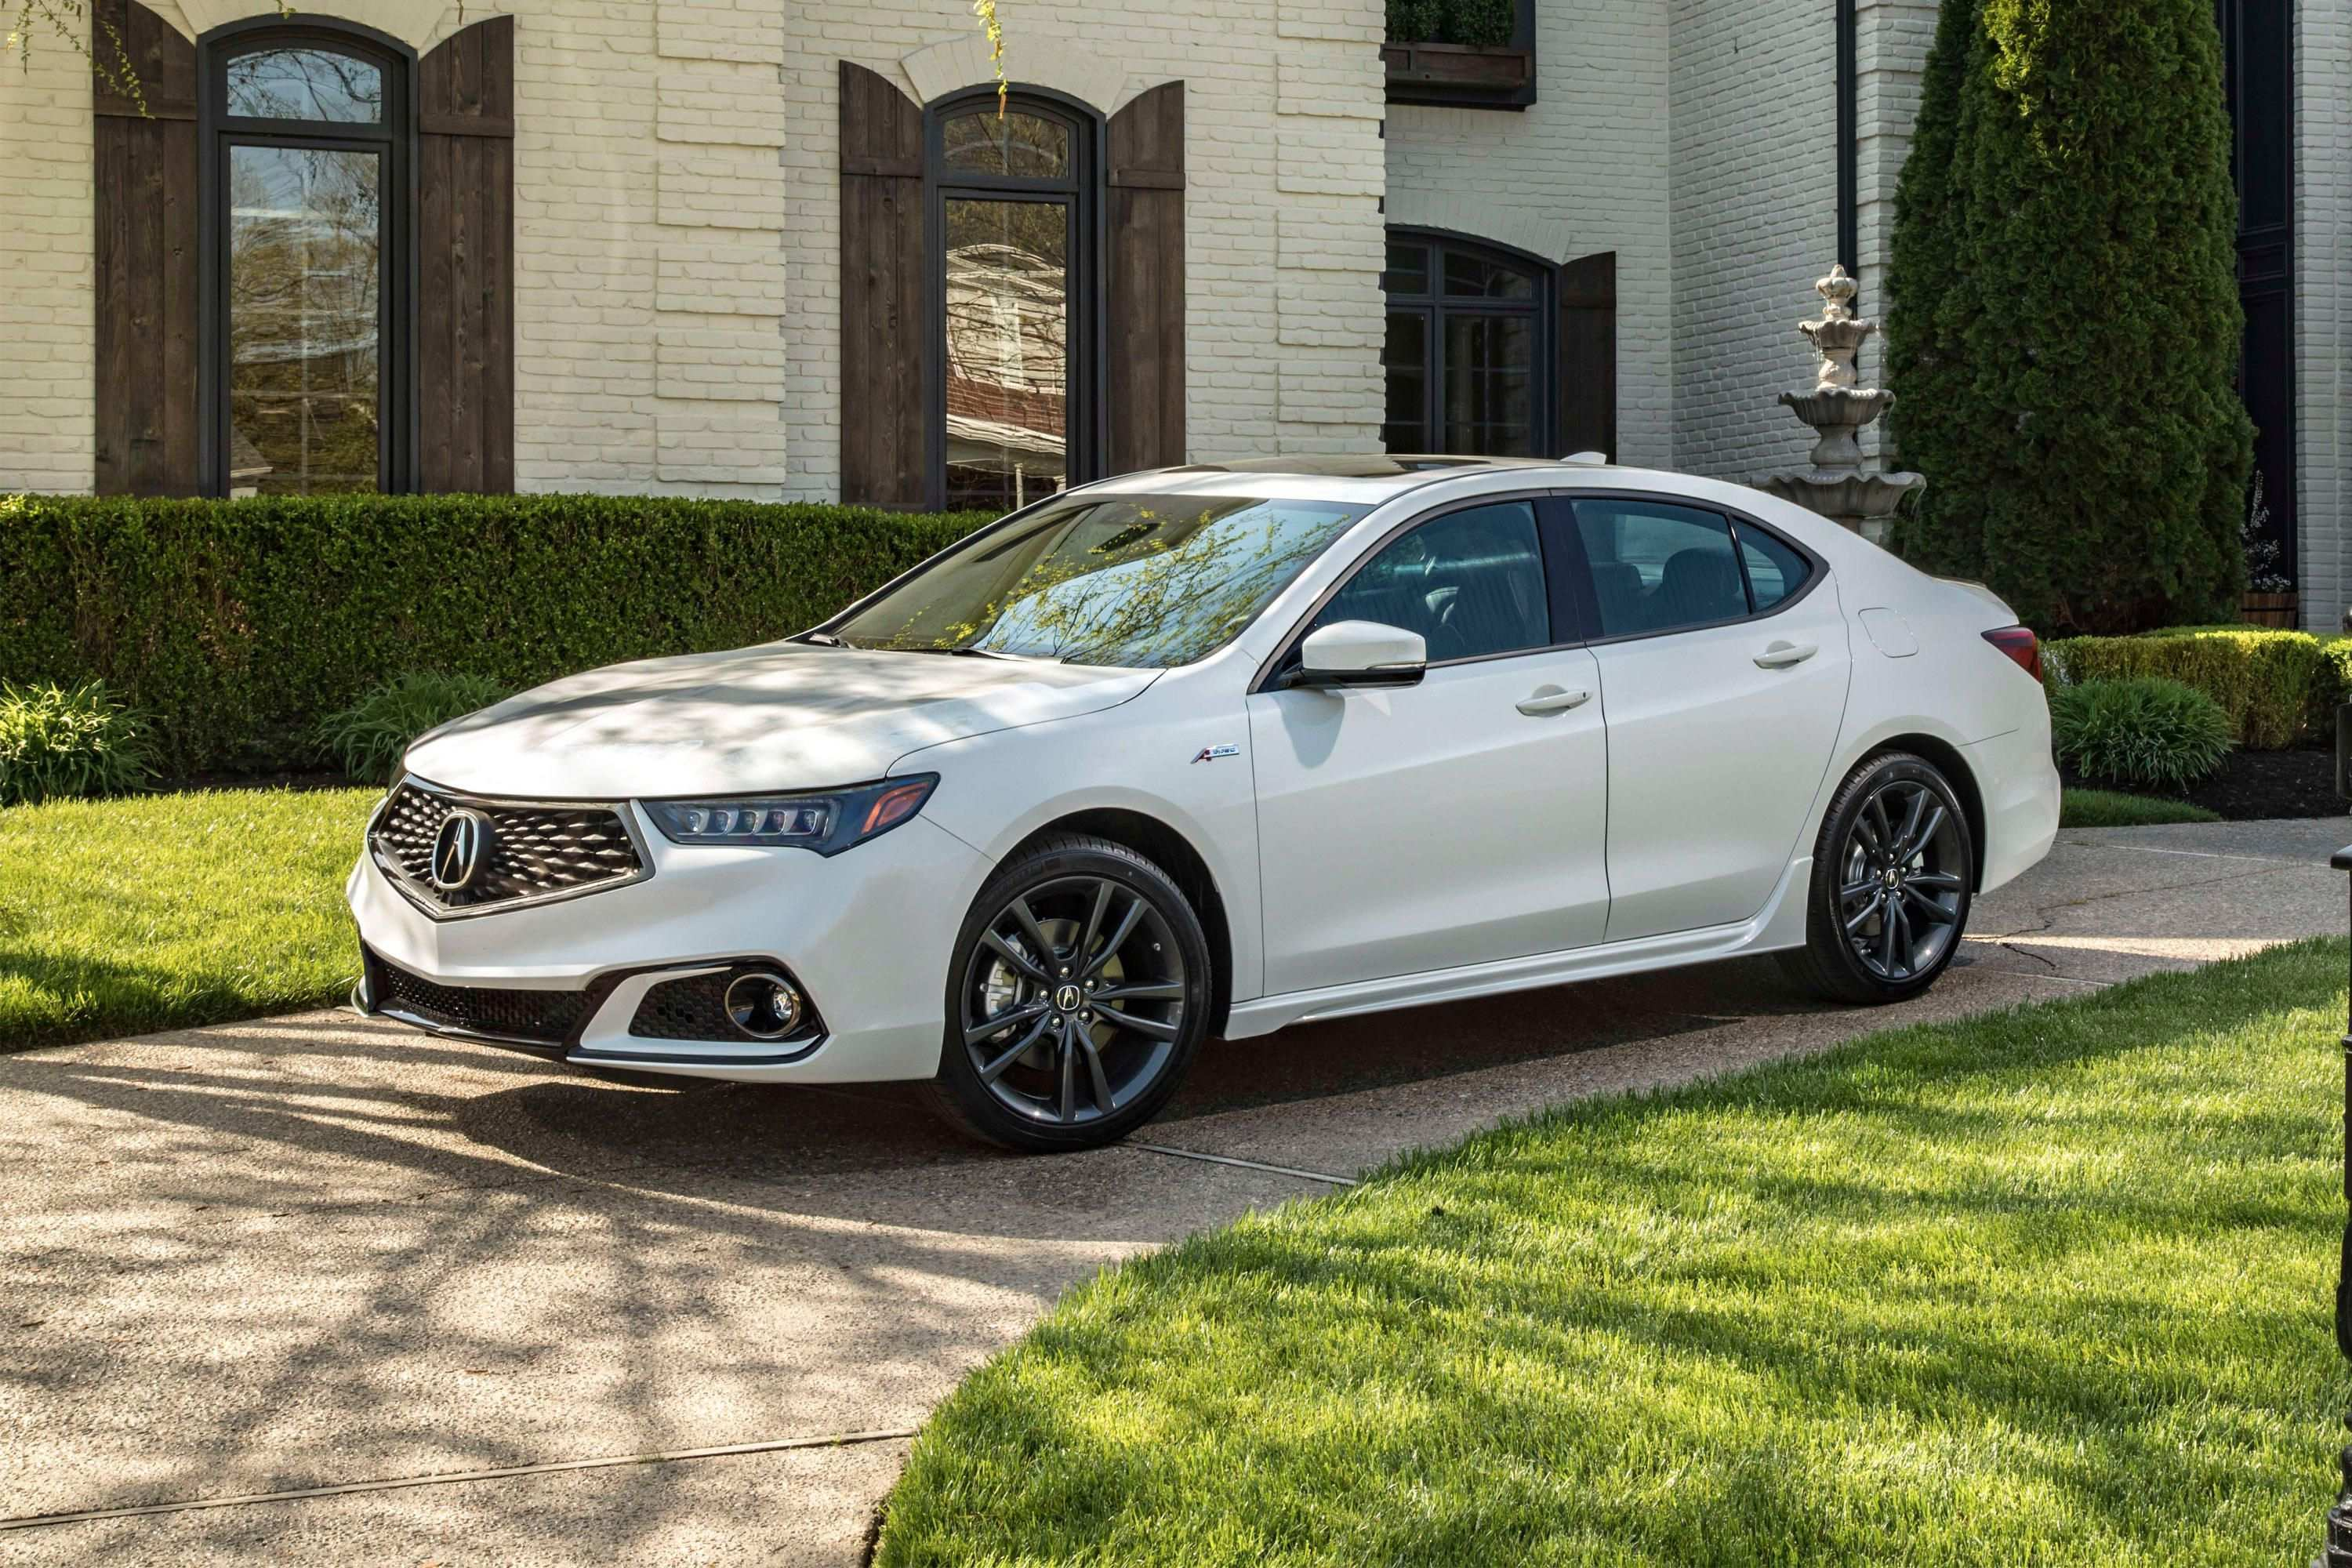 49 New 2019 Acura TLX Concept